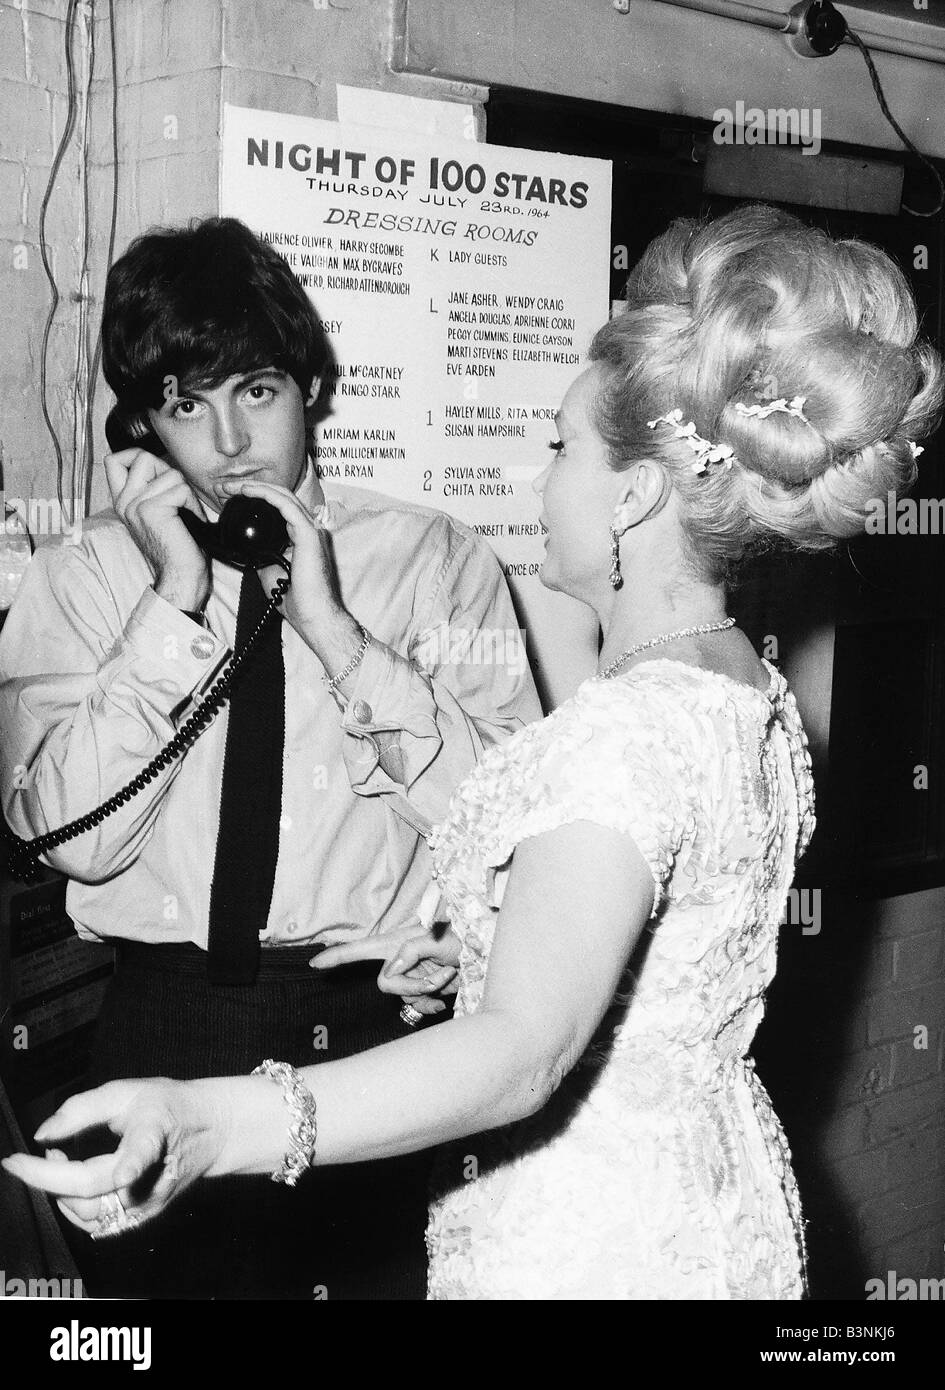 Paul McCartney Singer And Bass Guitar Player With The Beatles Talks On Phone While A Blonde Haired Lady Tries To Talk Him At Night Of Thousand